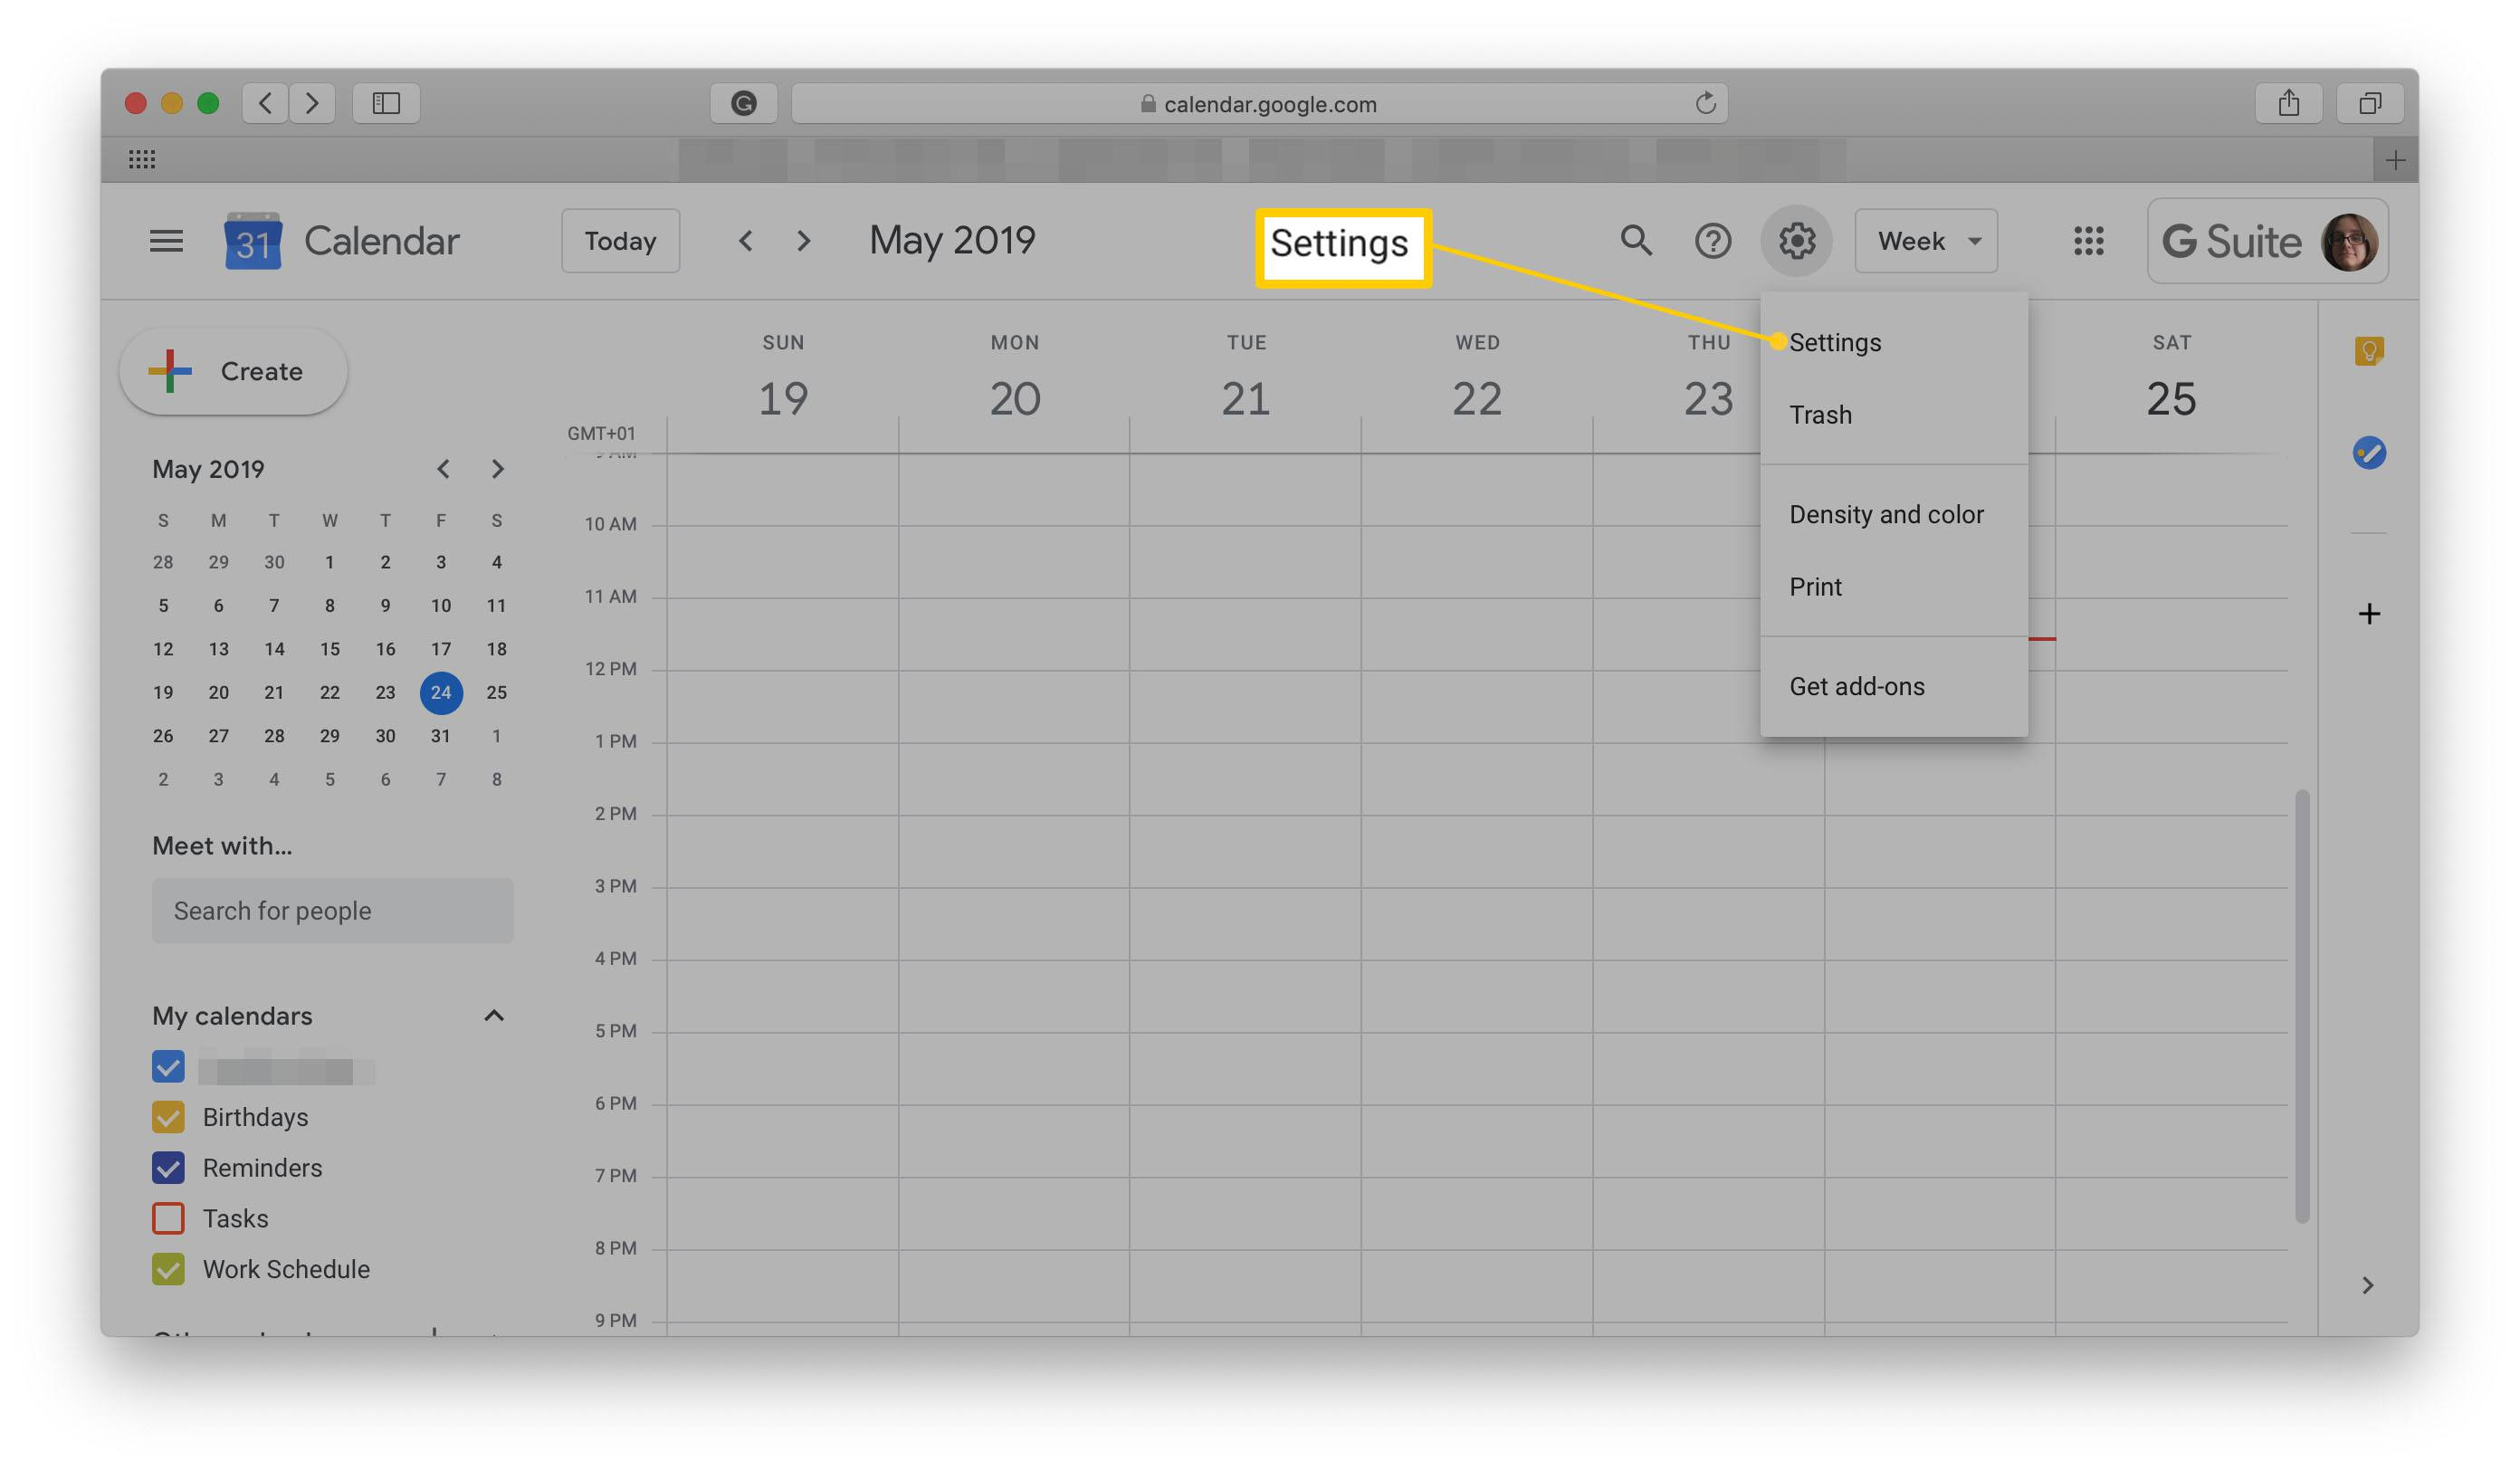 Google Calendar screen with Settings highlighted